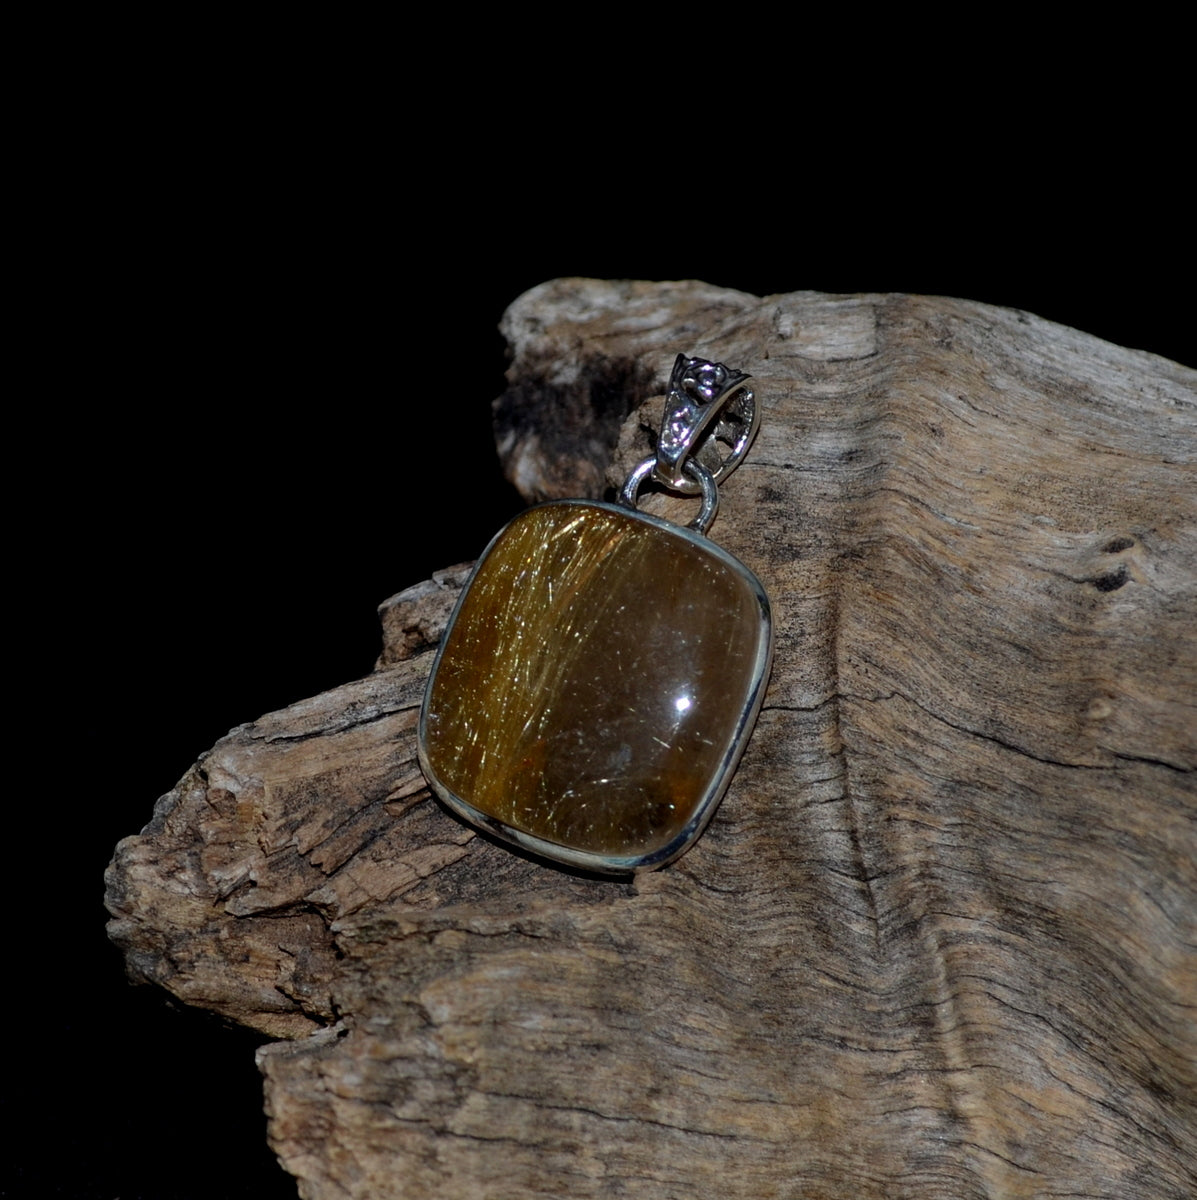 Golden Rutile Rutilated Quartz 925 Sterling Silver Pendant at Illiom Crystals - Afterpay Available